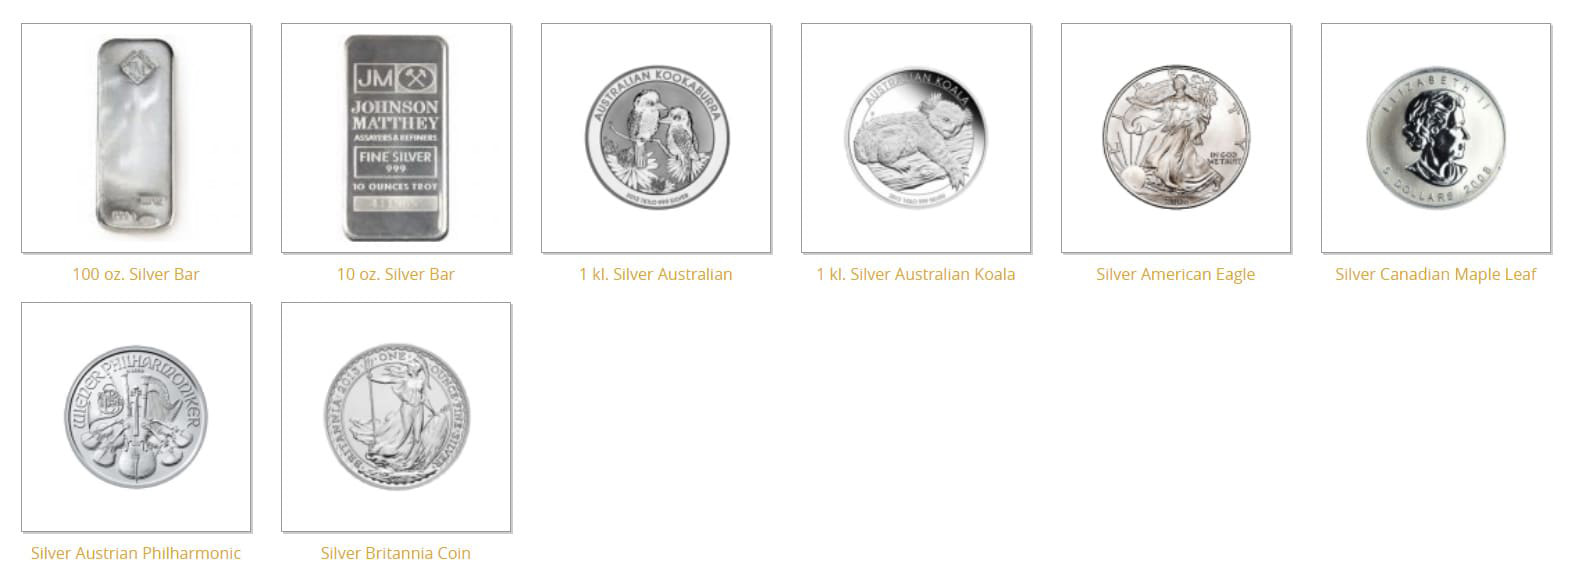 IRA-Approved Coins and Bars - Silver